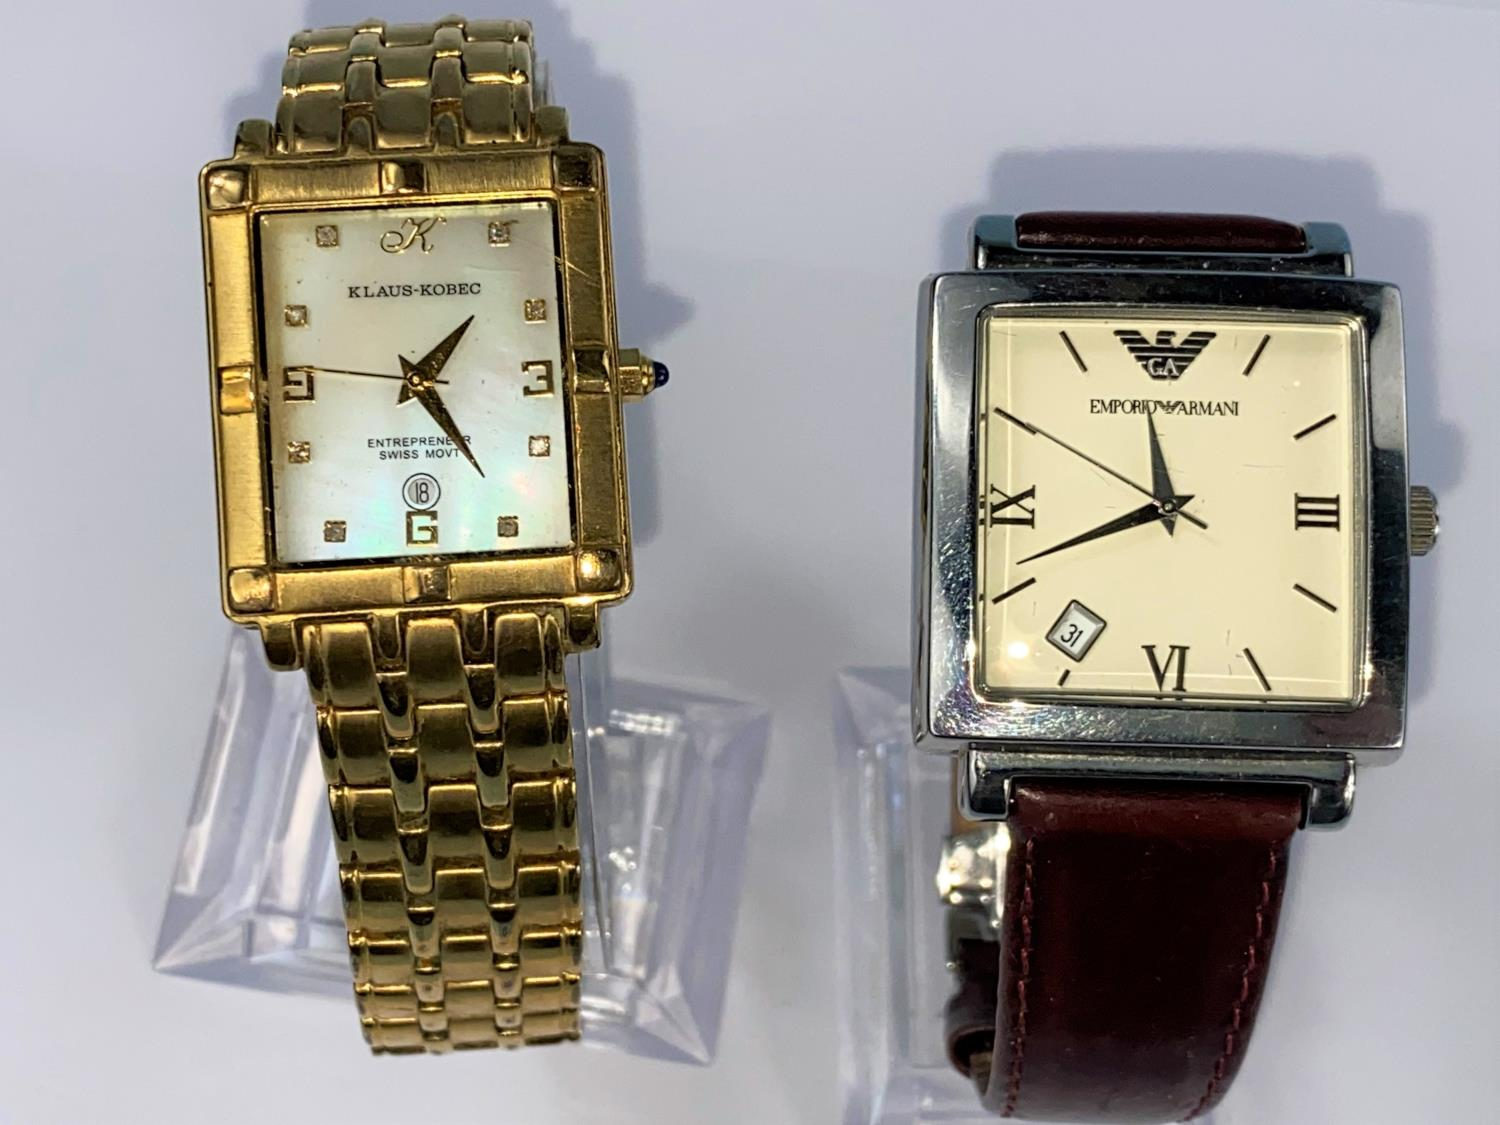 A Gent's Emporio Armani wristwatch and a Klaus Kobec wristwatch with mother of pearl dial and gilt